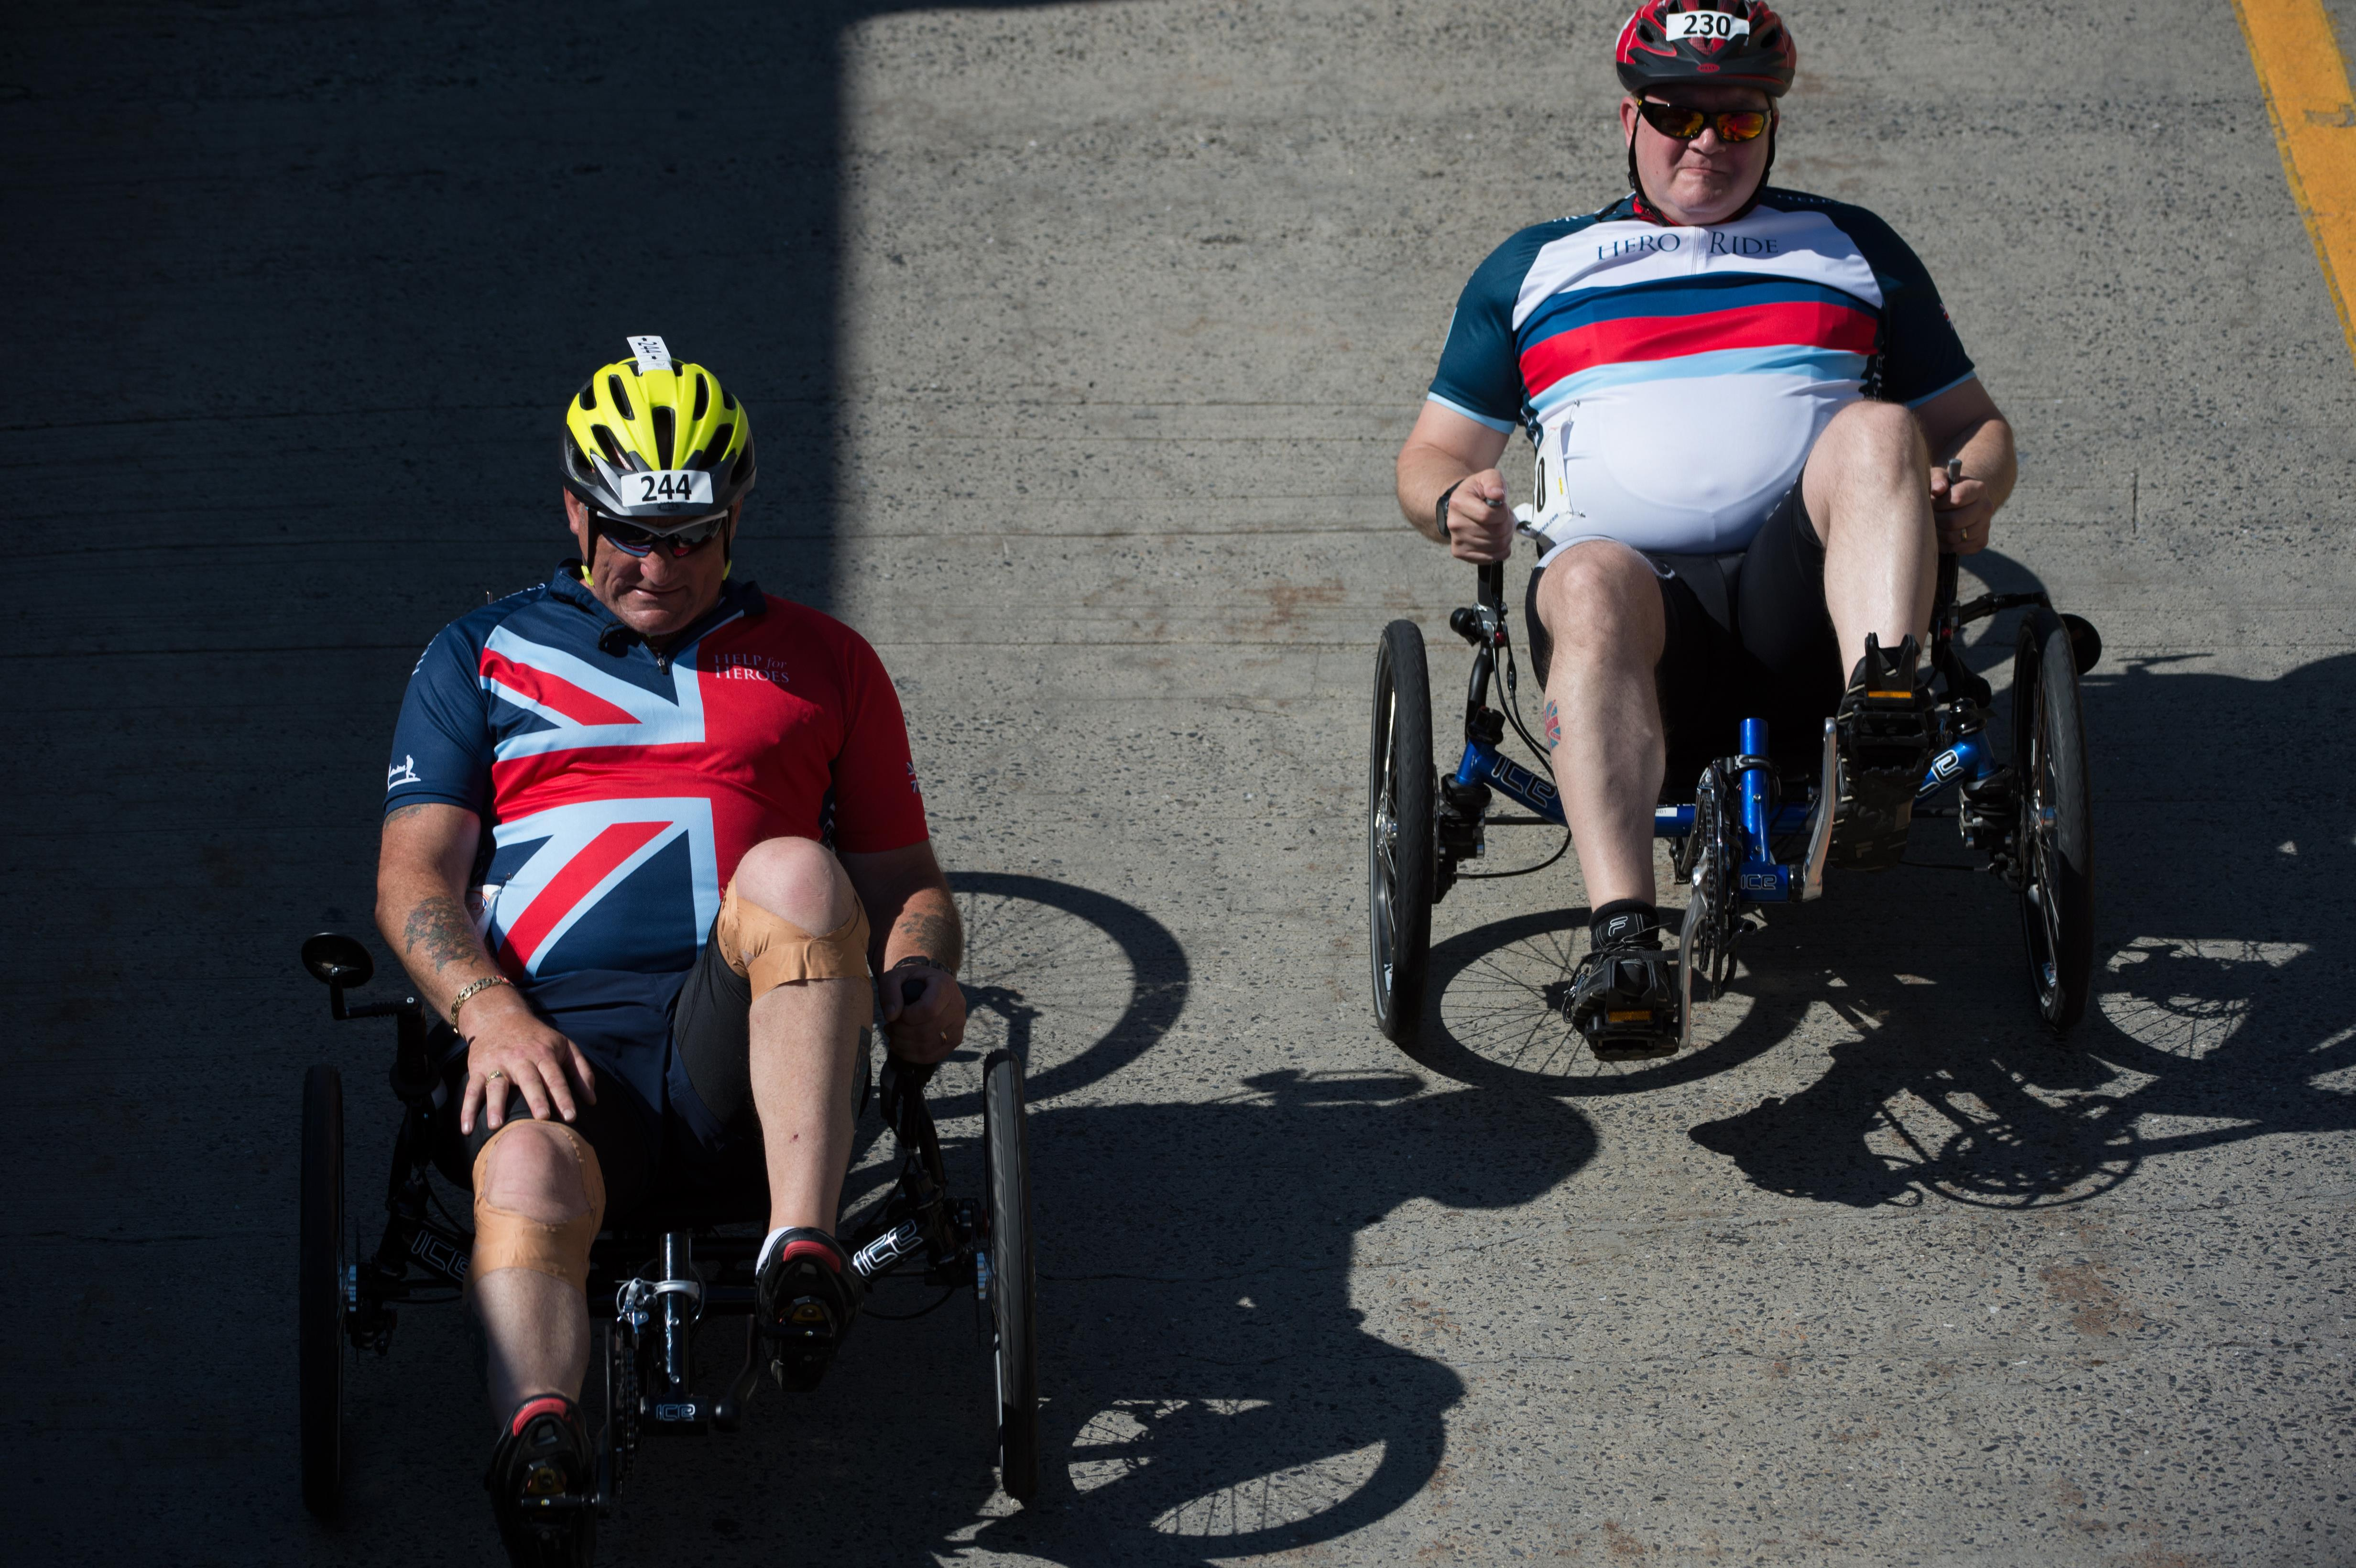 British Veteran Takes Silver Medal In Cycling At Warrior Games